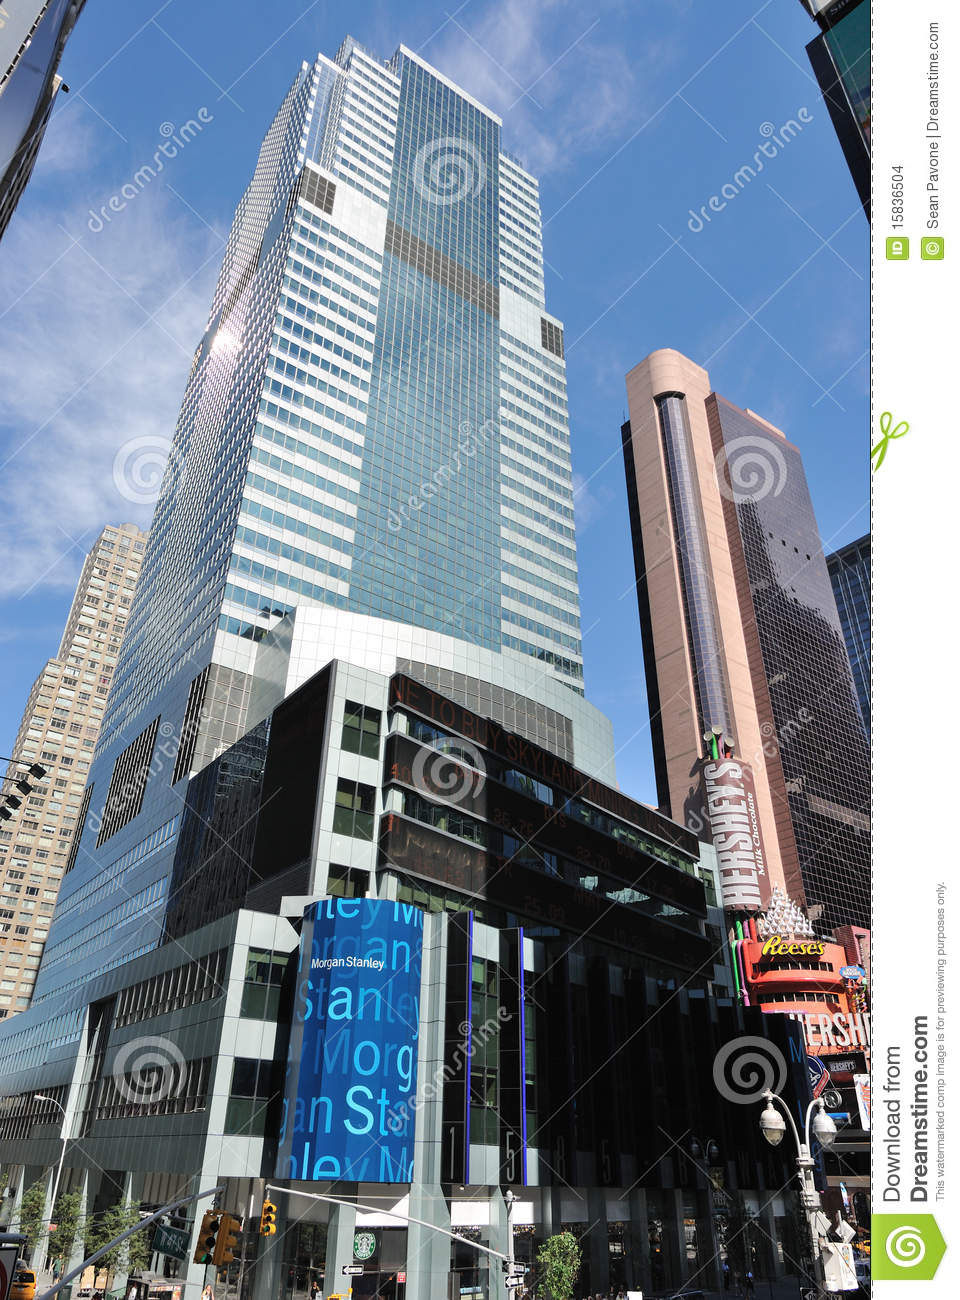 Morgan Stanley Headquarters Editorial Stock Image - Image of